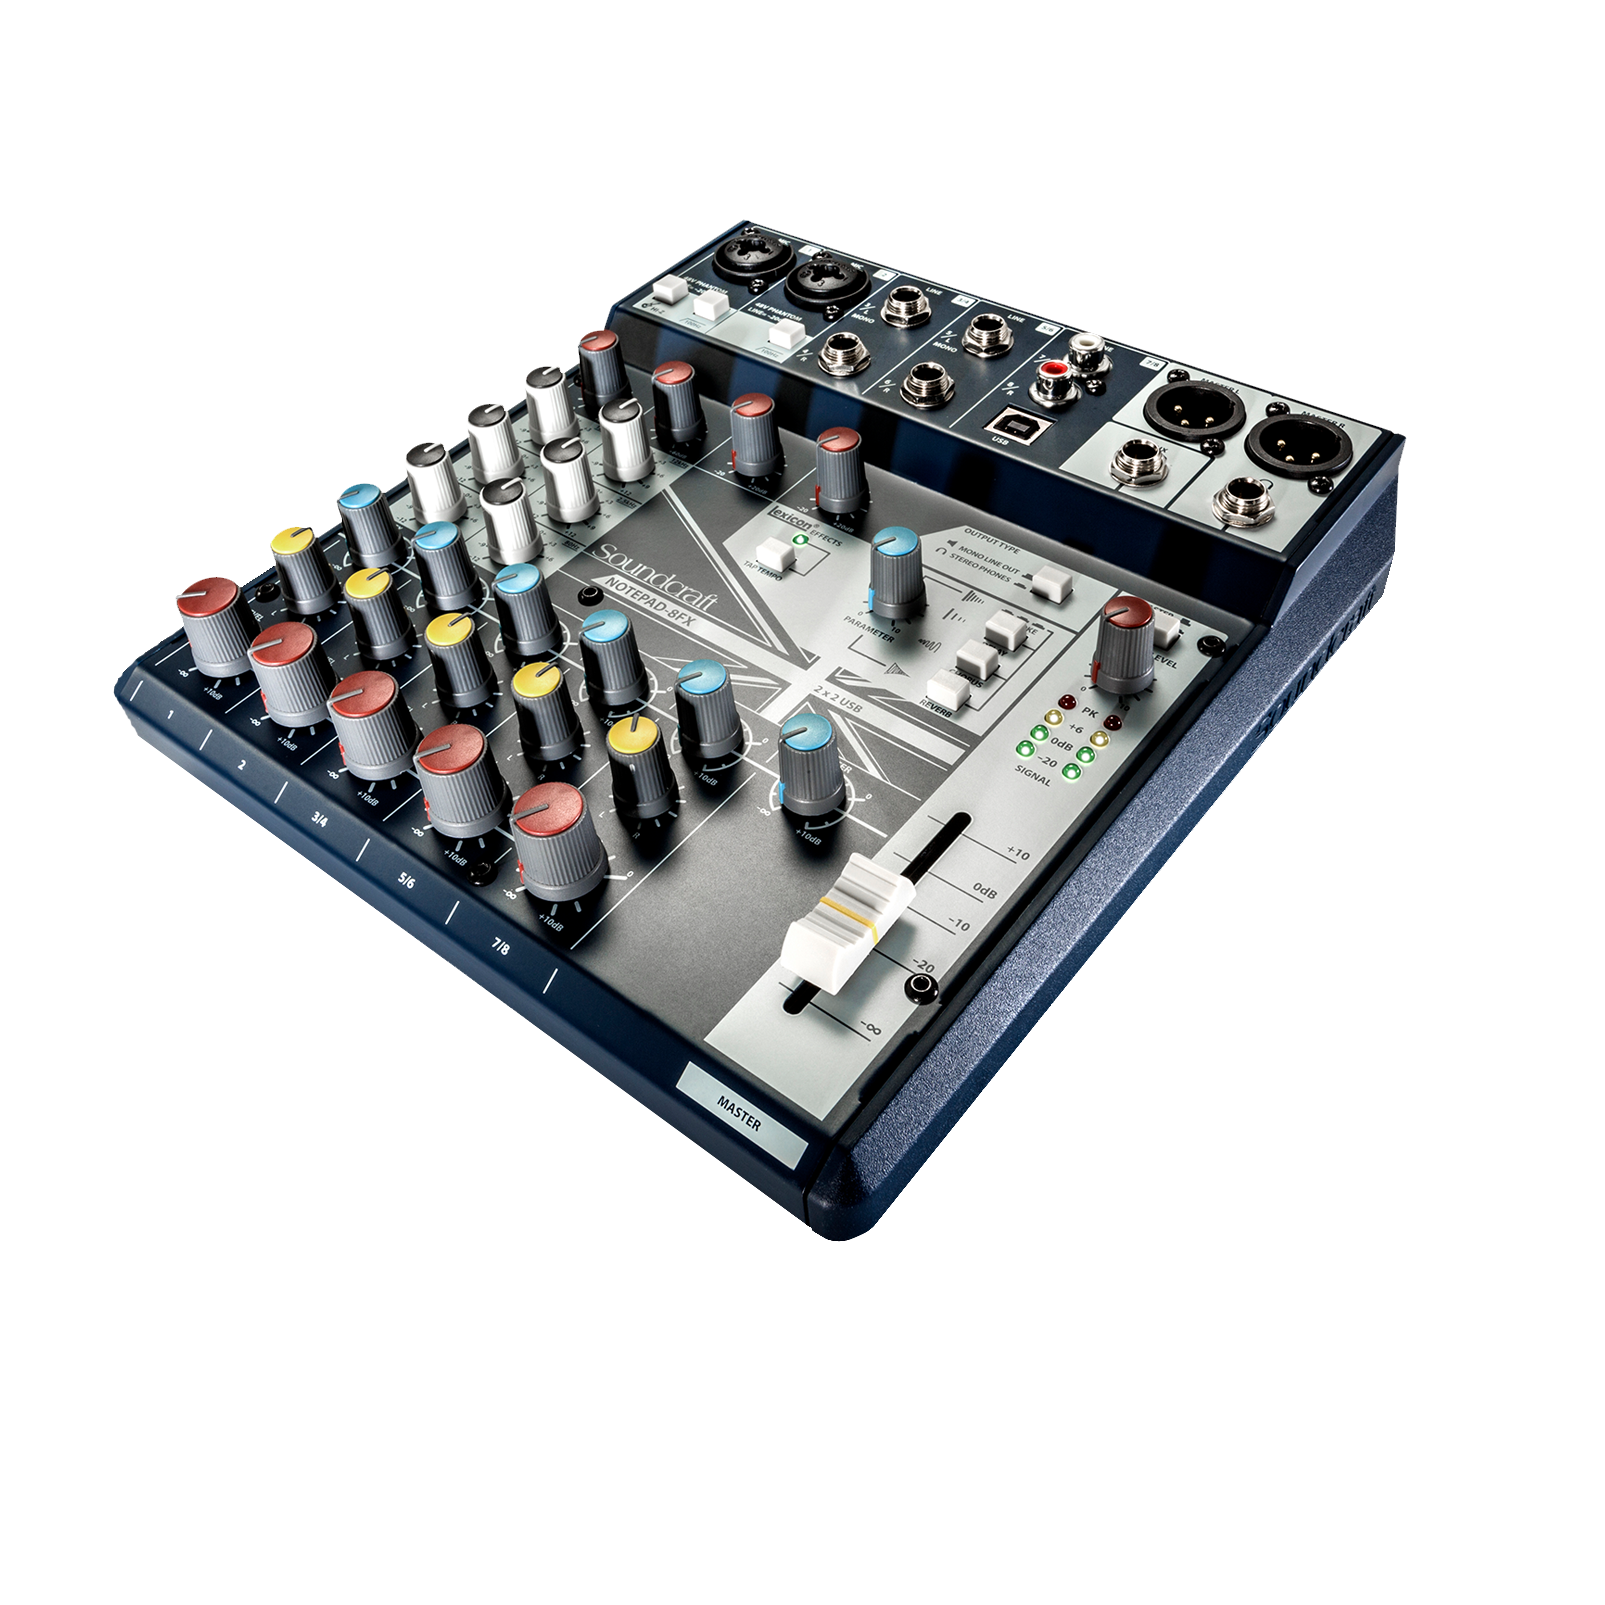 Notepad-8FX - Dark Blue - Small-format analog mixing console with USB I/O and Lexicon effects - Detailshot 2